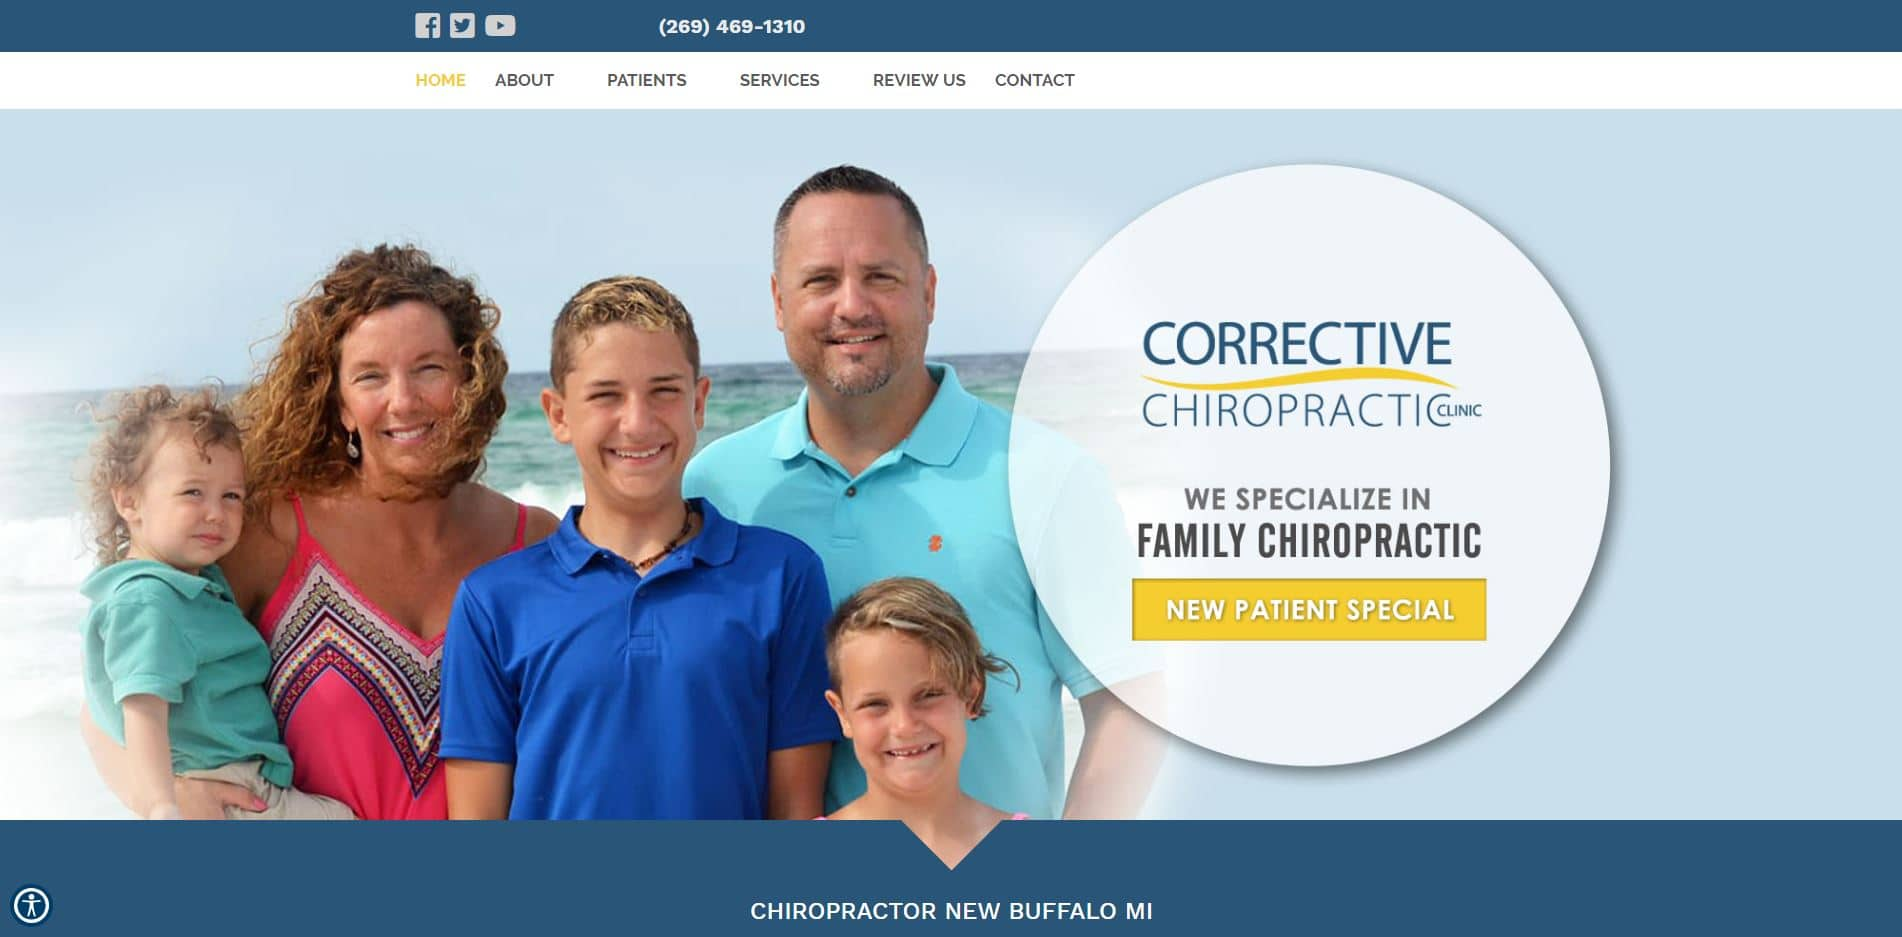 Chiropractor in New Buffalo